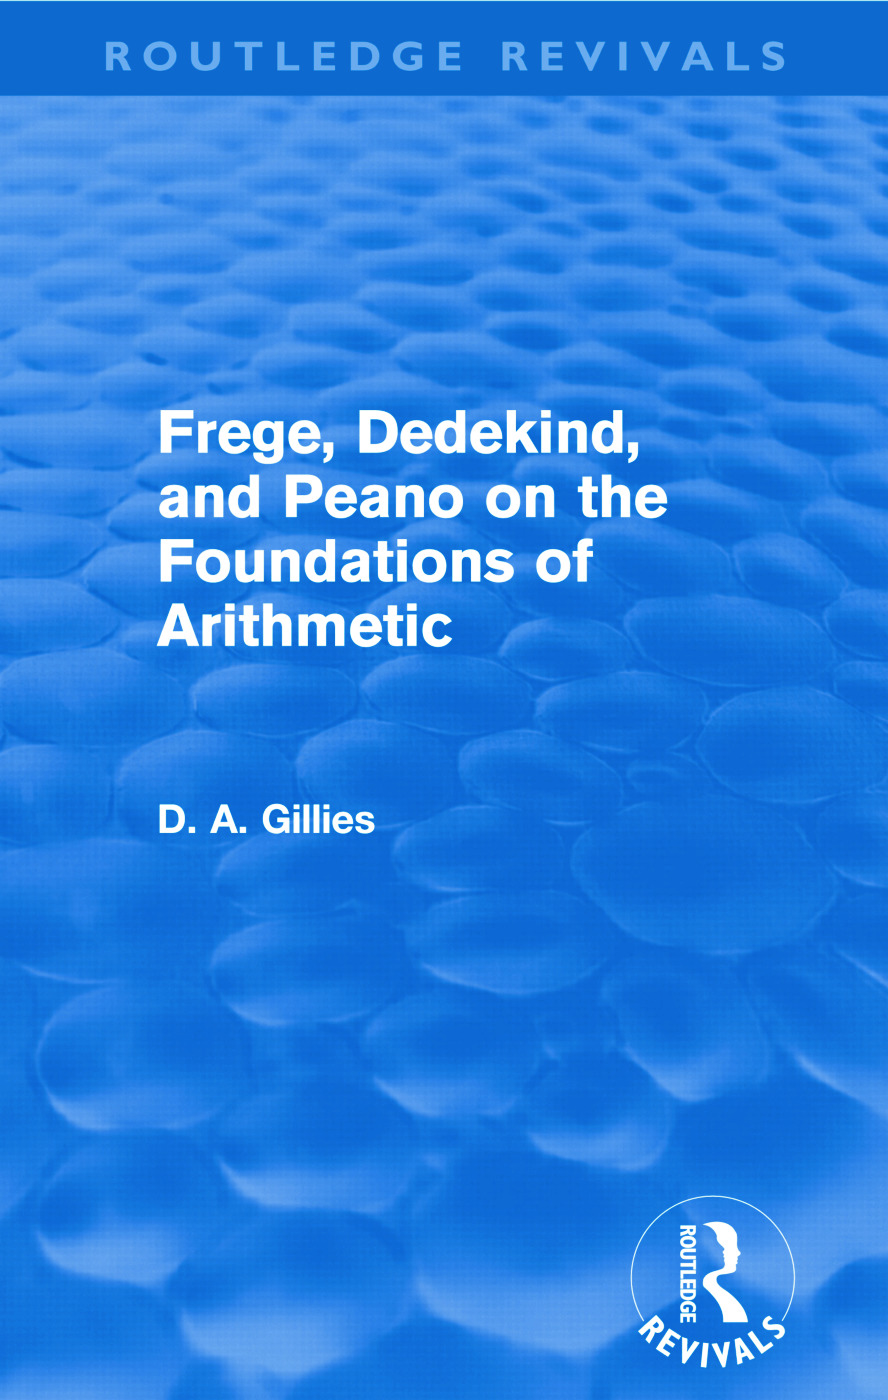 Frege, Dedekind, and Peano on the Foundations of Arithmetic (Routledge Revivals) book cover